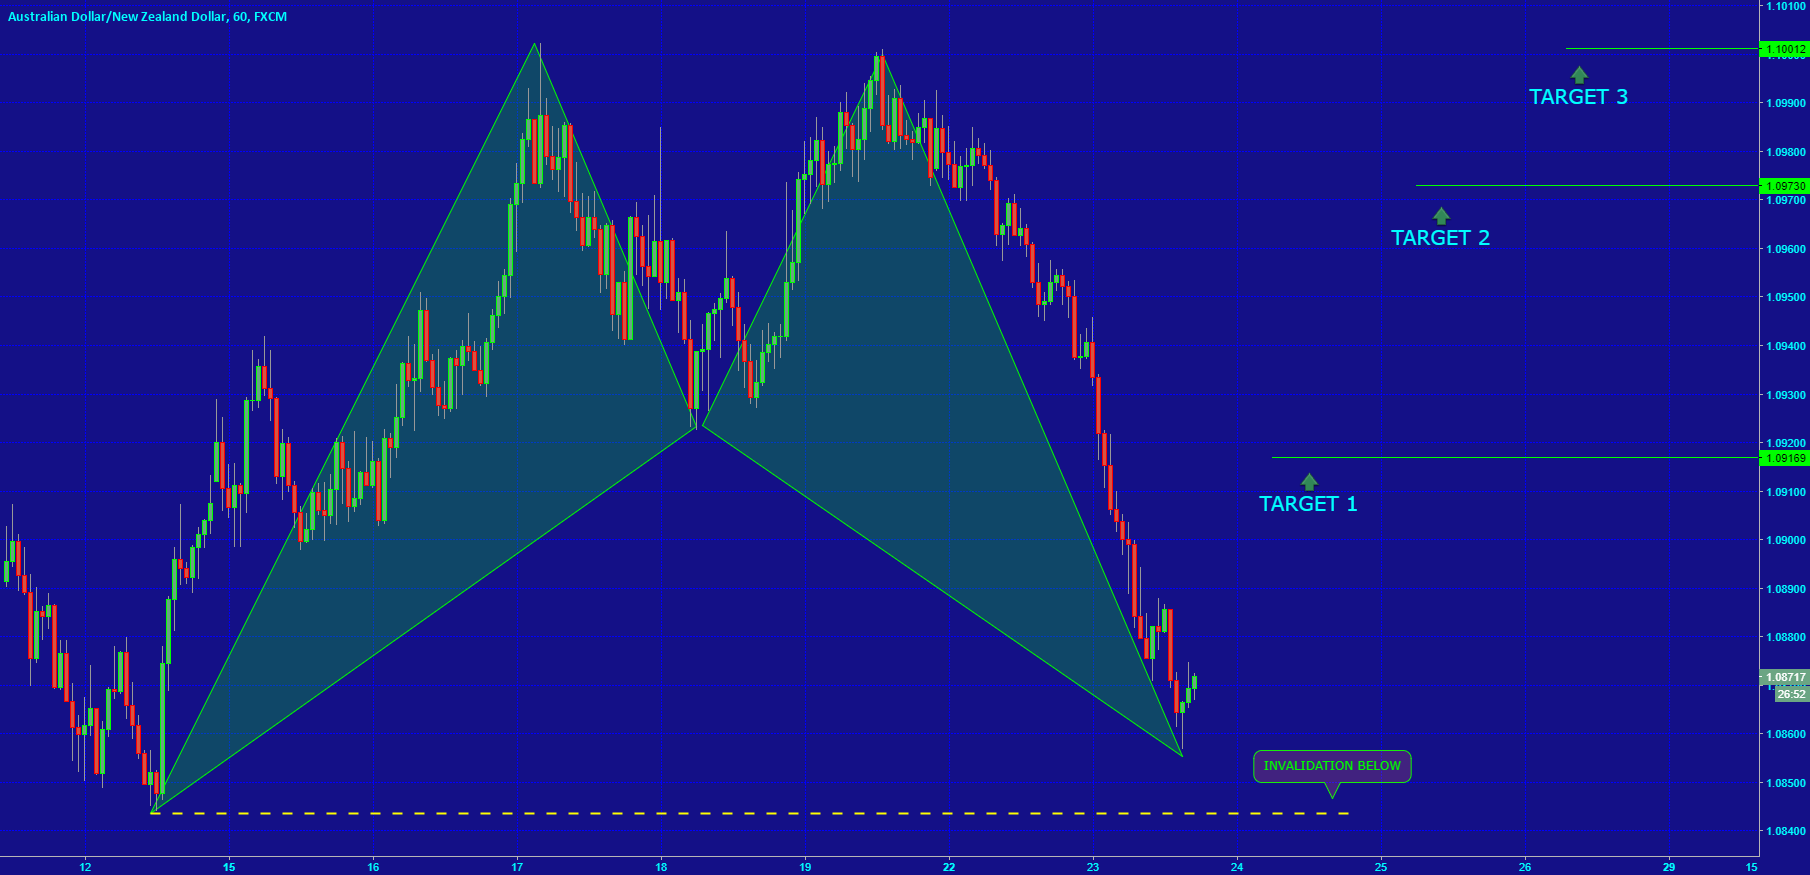 [AUDNZD] POTENTIAL HARMONIC STRUCTURE